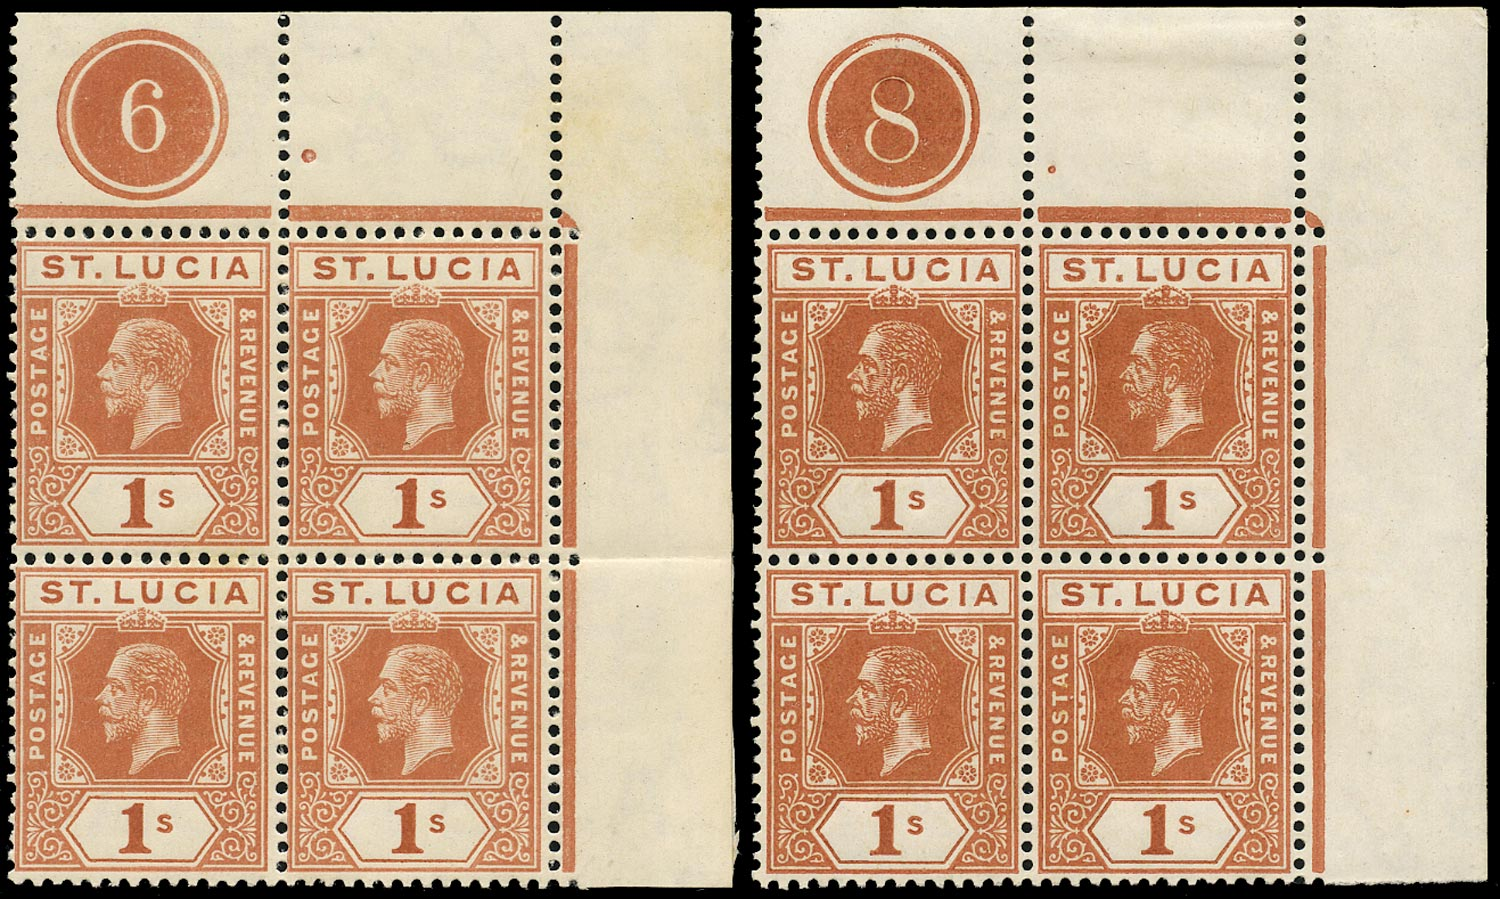 ST LUCIA 1912  SG86 Mint KGV 1s orange-brown watermark MCA plate number 6 and 8